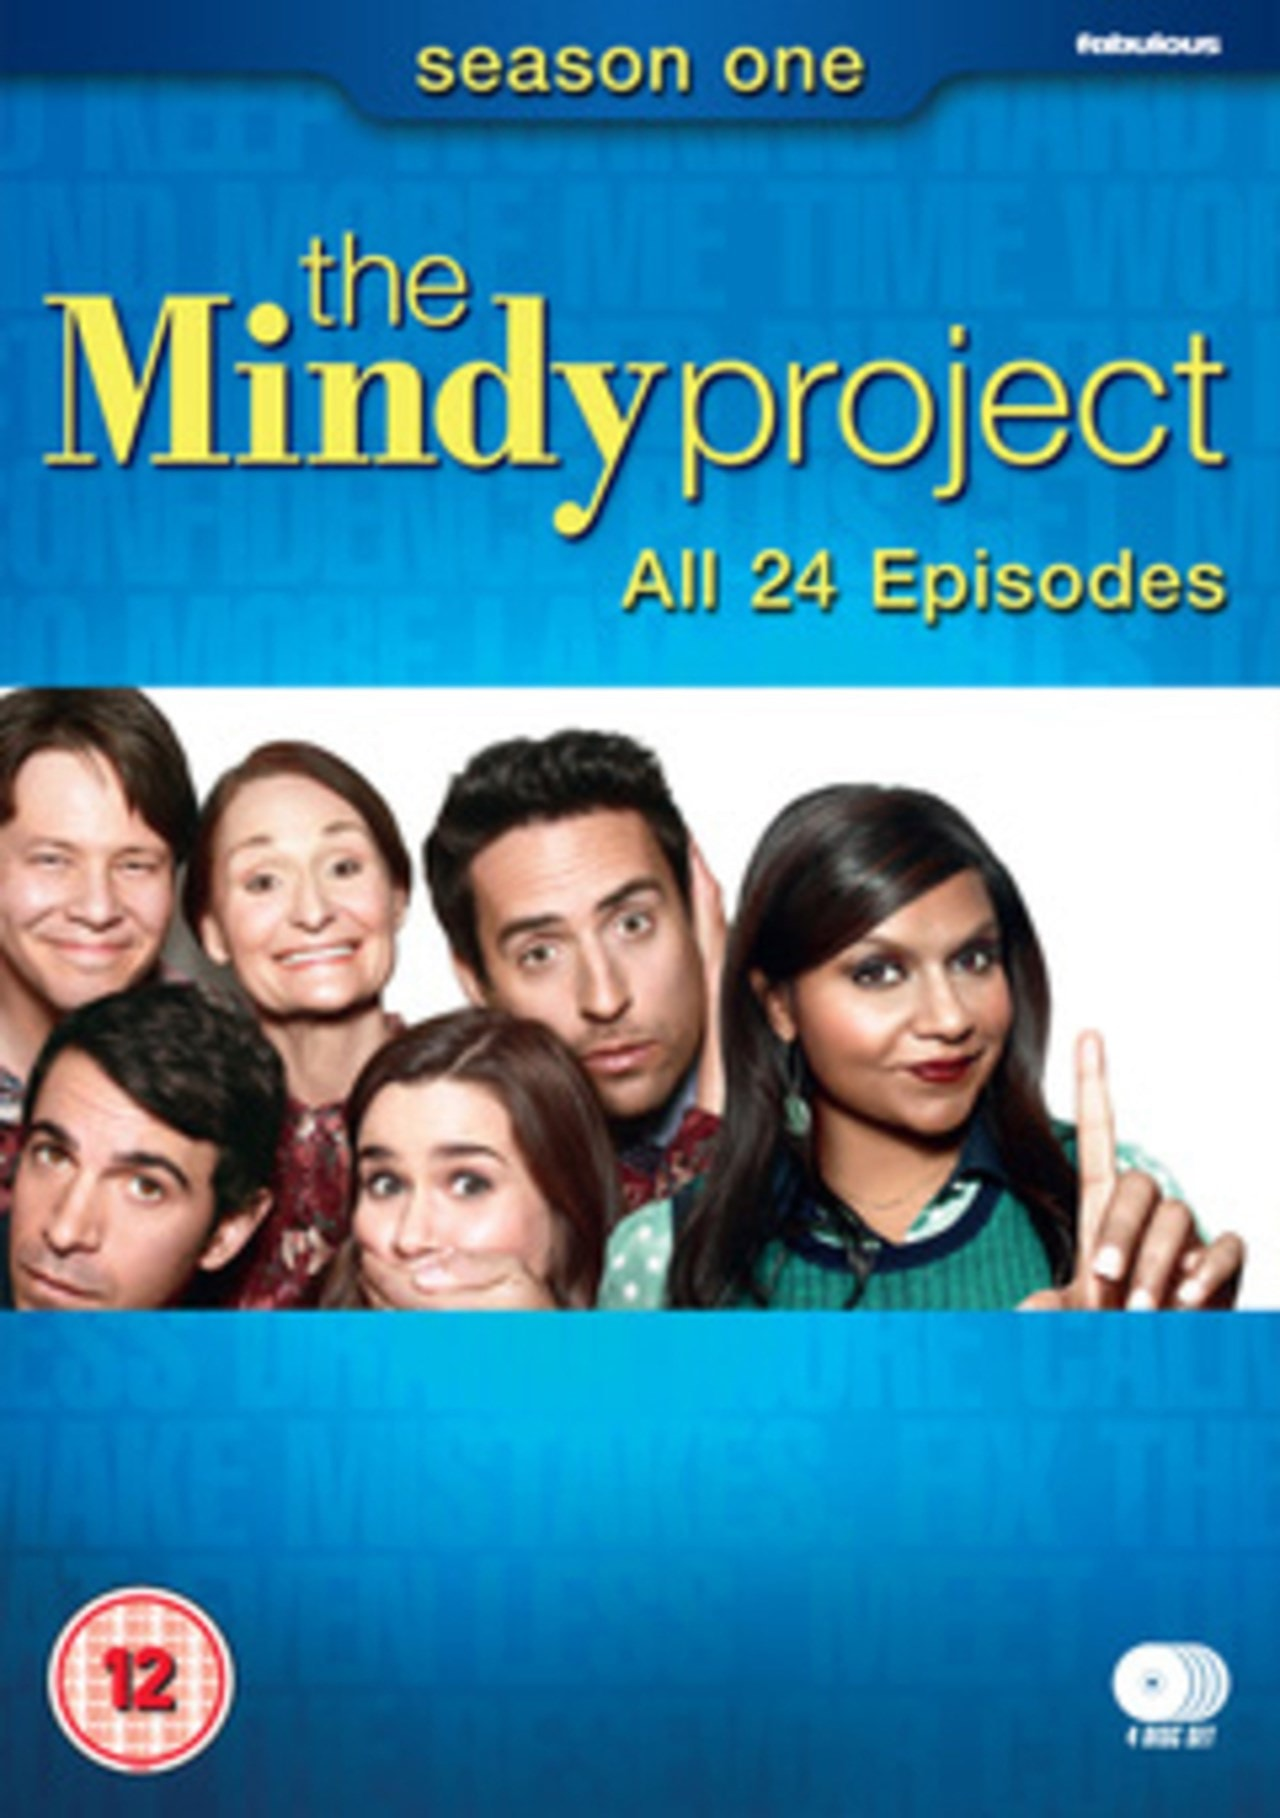 The Mindy Project: Season 1 - 1